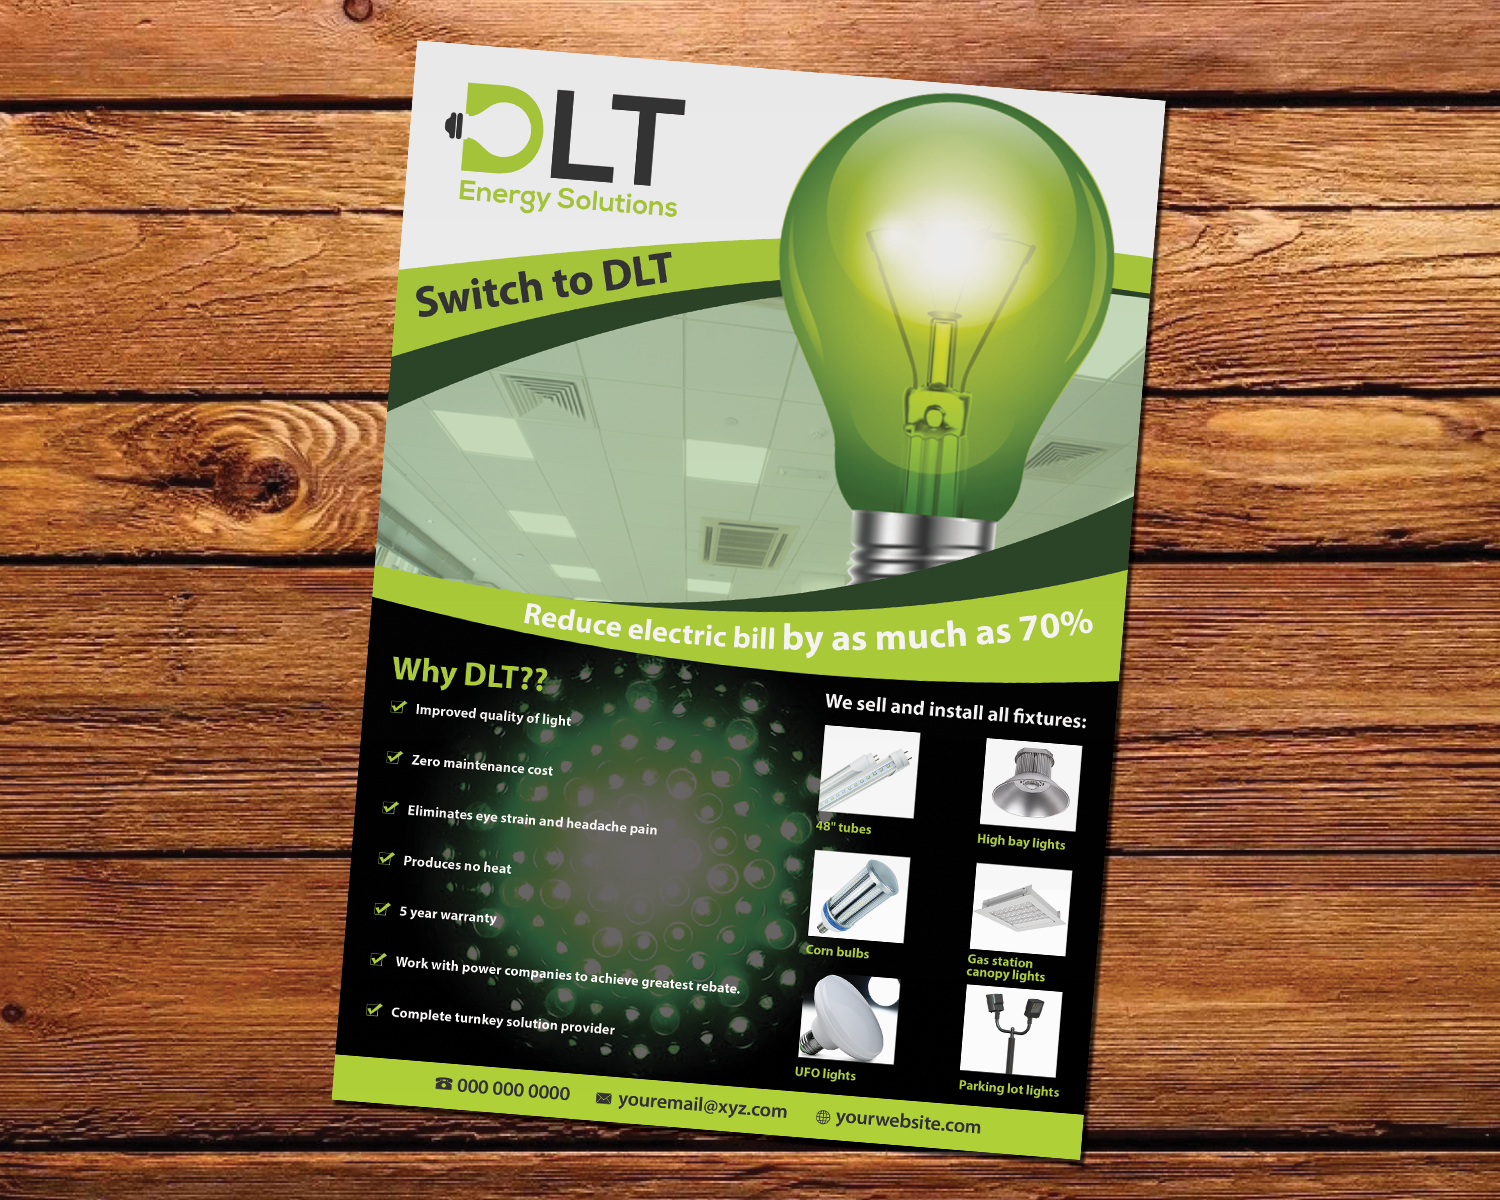 Flyer Design By Rizu0027 For DTL Energy Solutions Inc. | Design #16371349